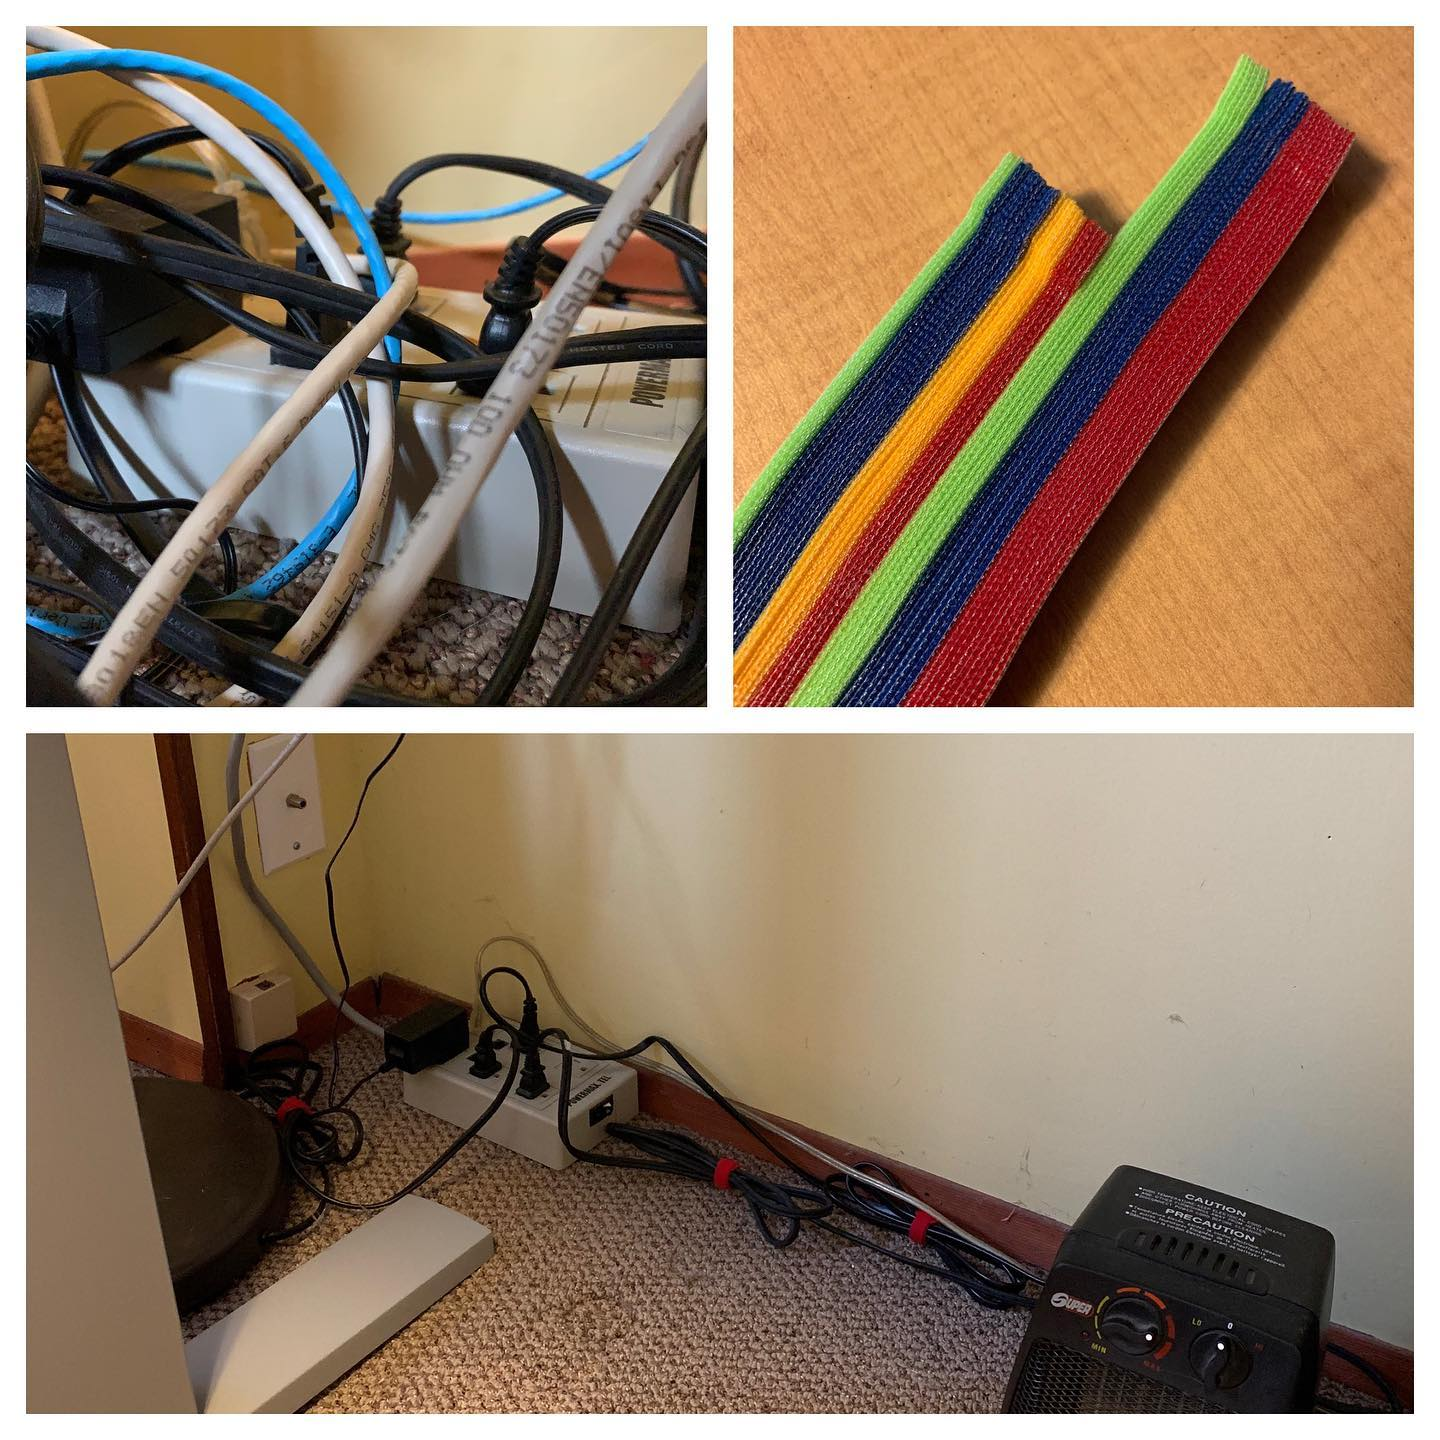 A little before and after shot (thanks for the push @riversmitchell) The tidy cables look so much better and all I needed was a few minutes, some Velcro, and a few screws. #homeoffice #tidycables #velcro